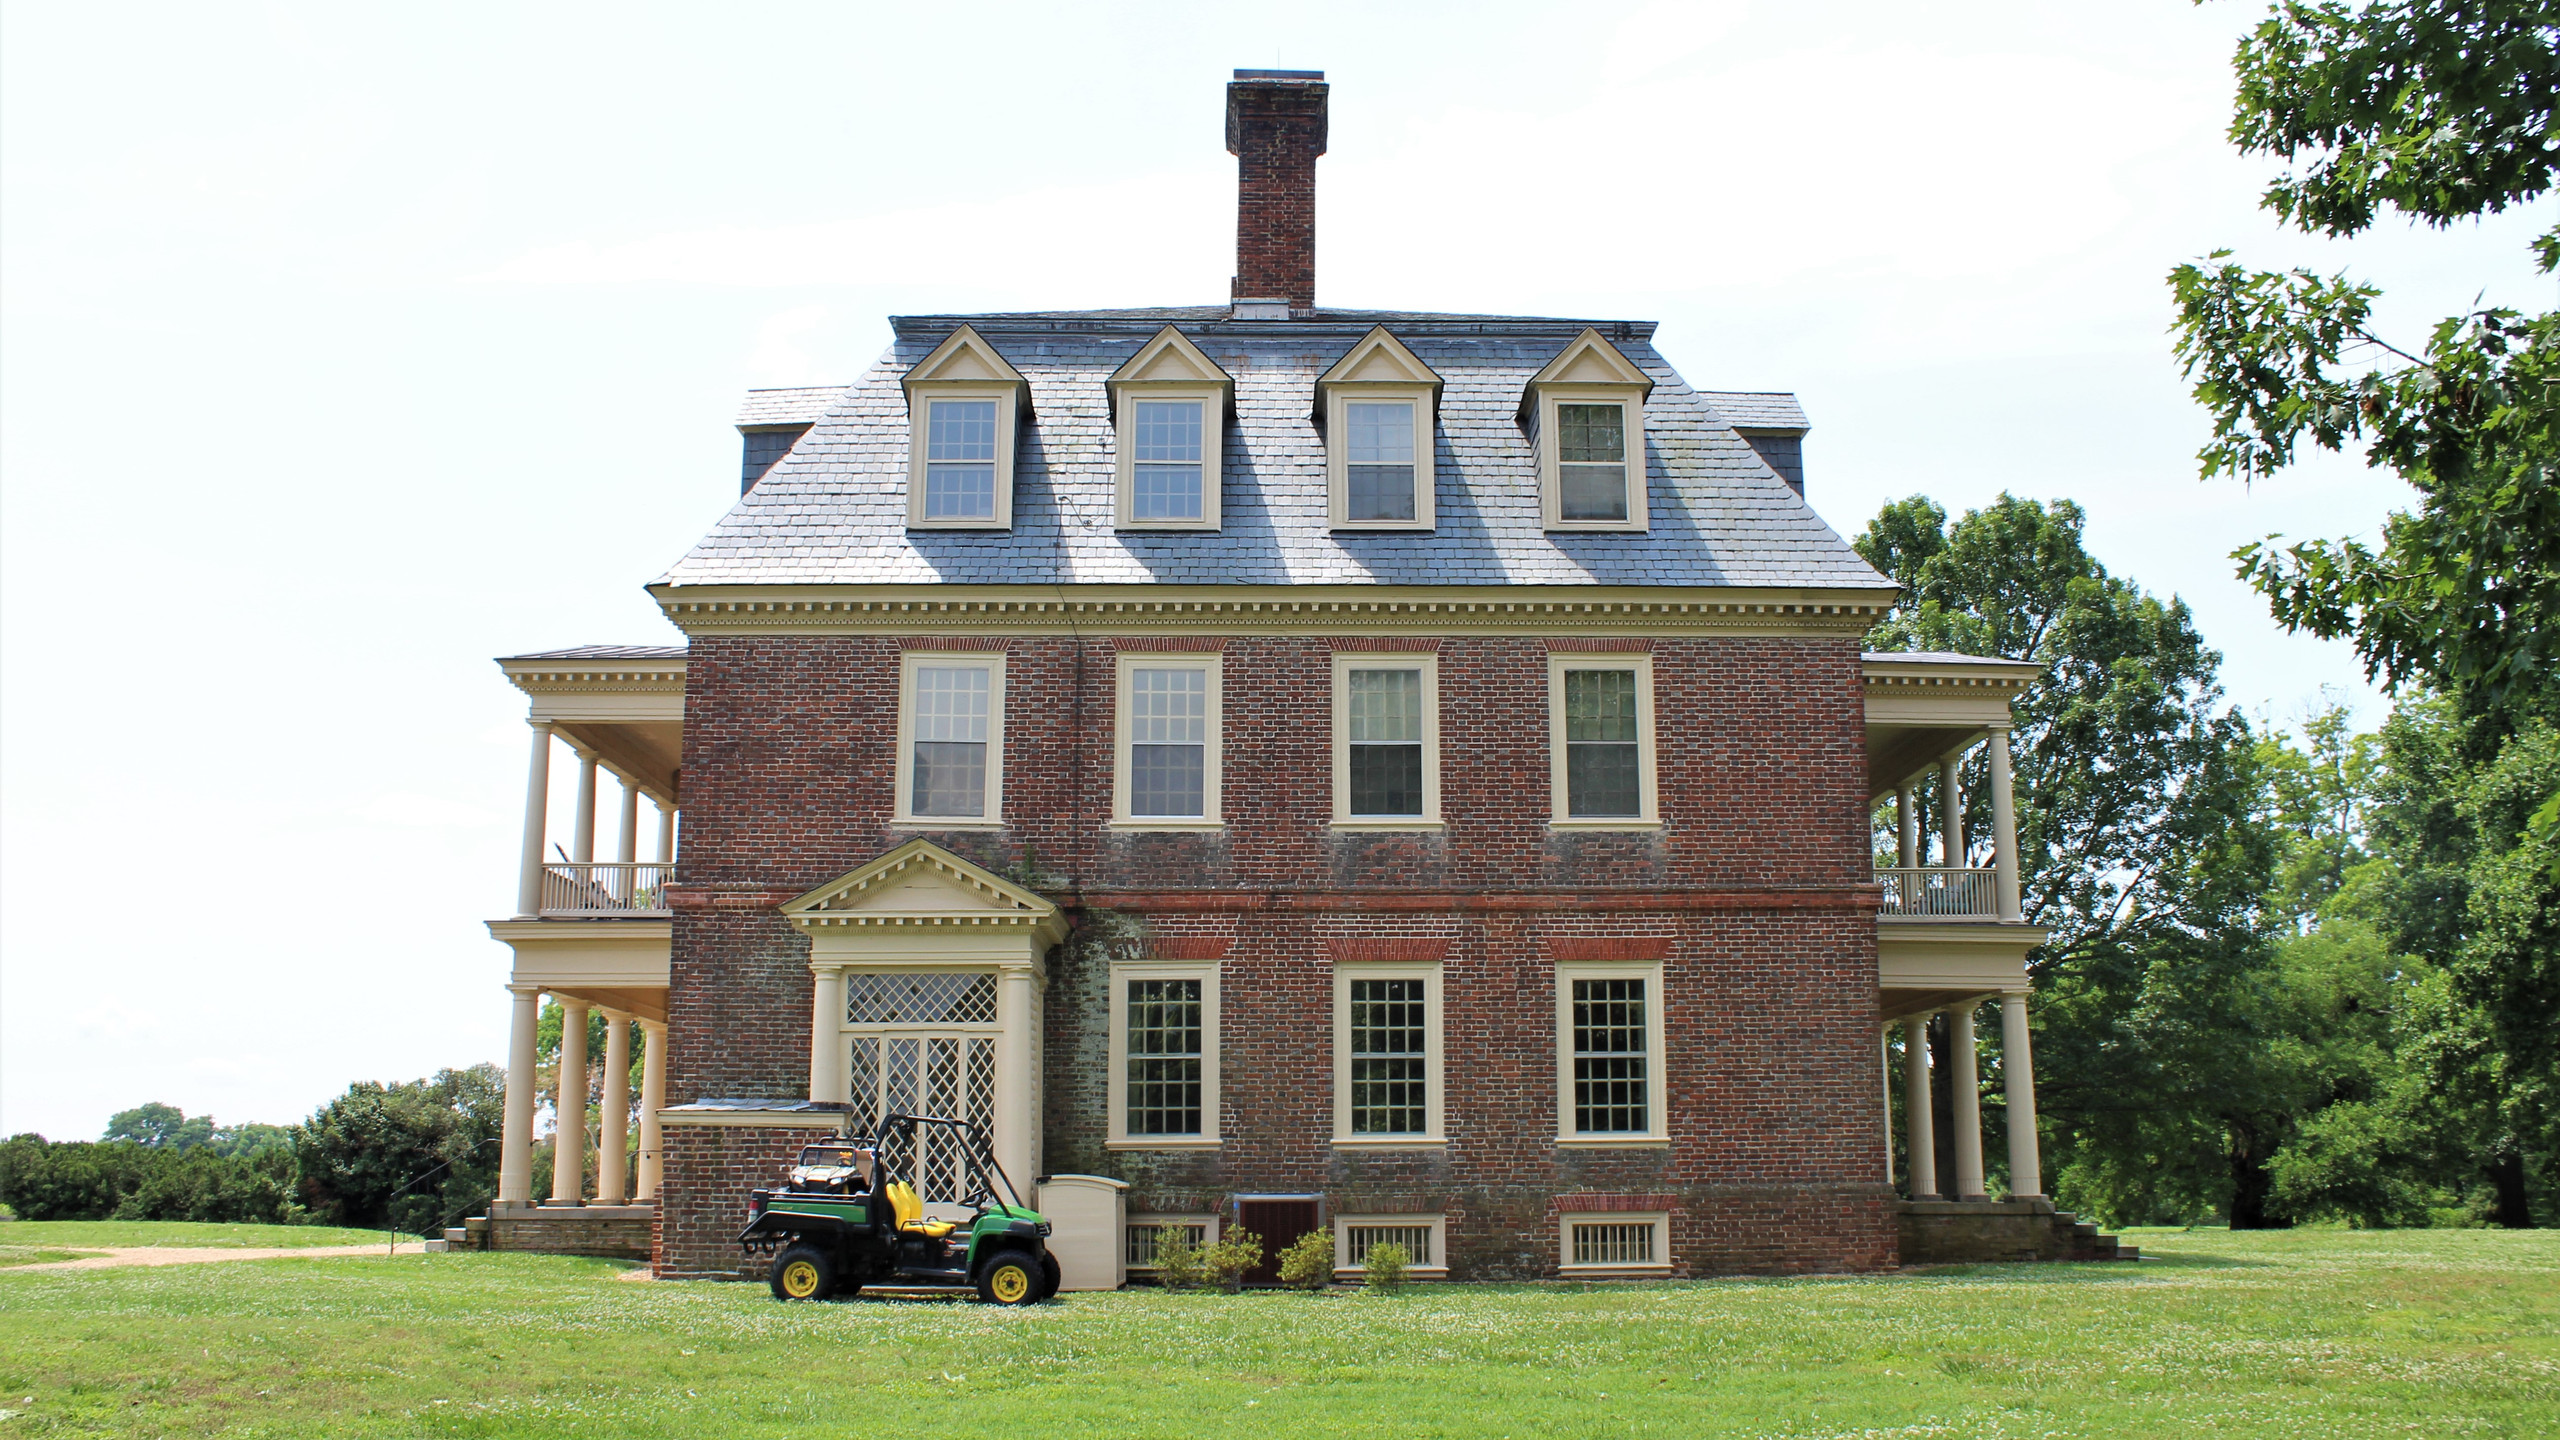 North View of the Great House